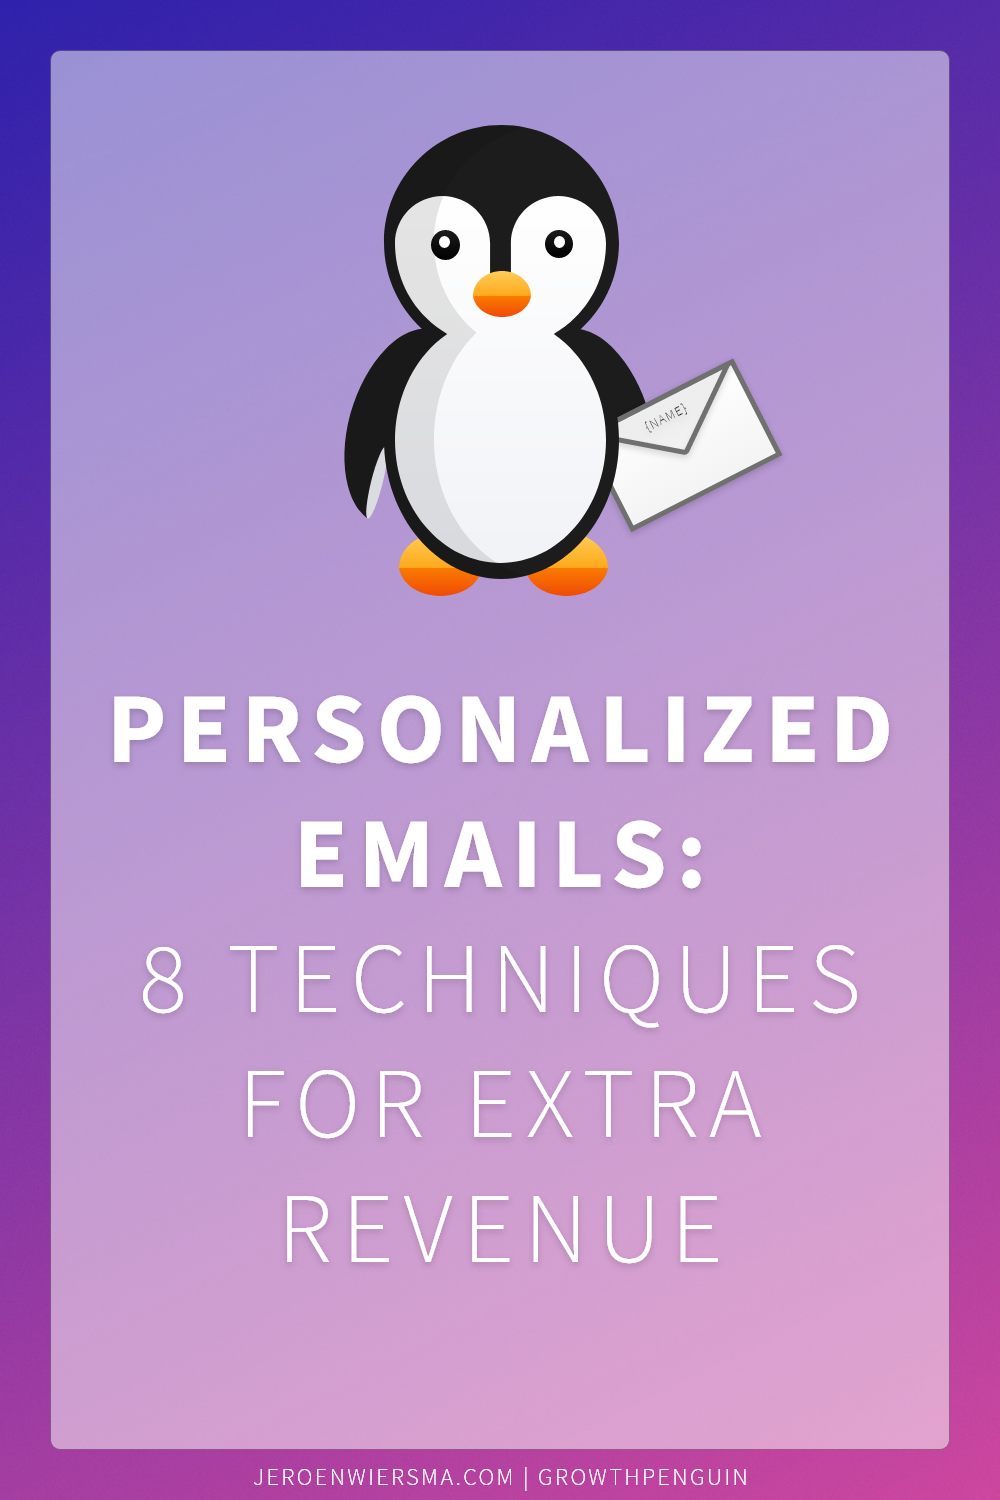 Personalized emails: 8 techniques for extra revenue